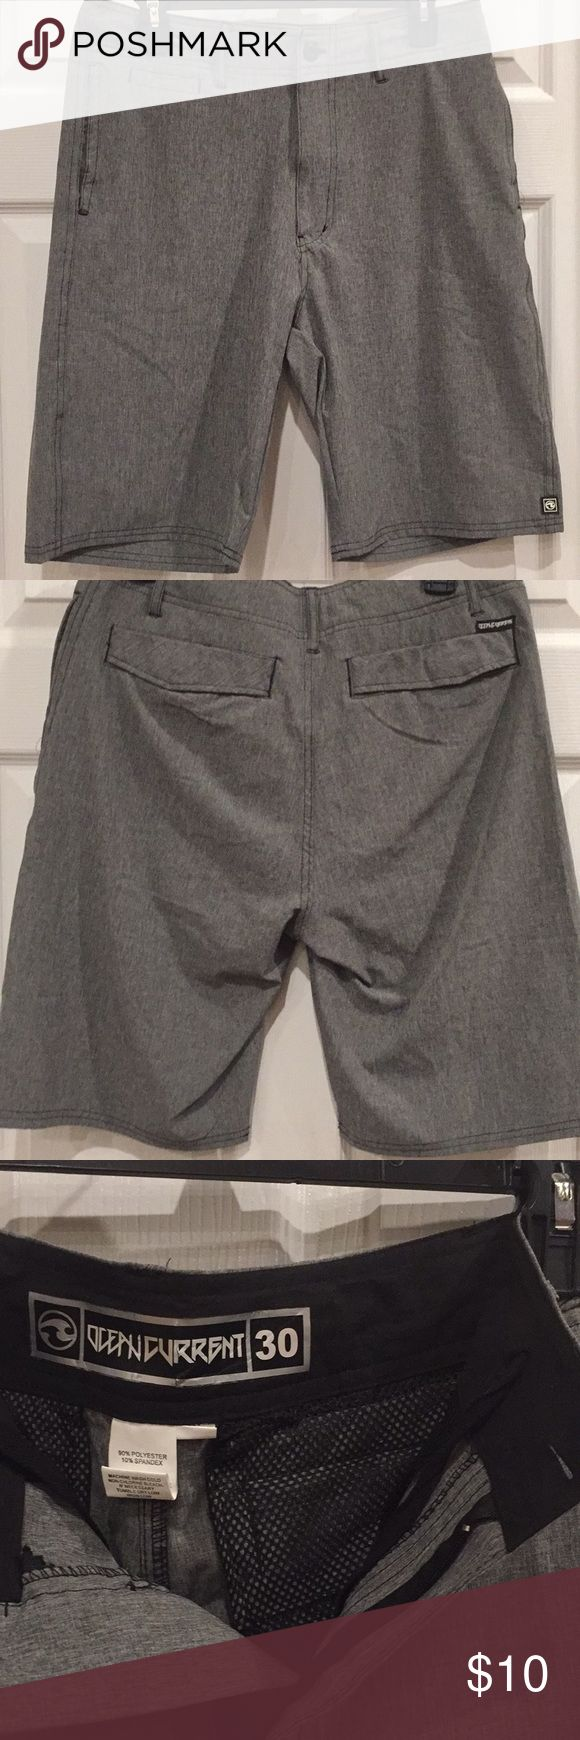 Ocean Current hybrid shorts/swim trunks These lightweight shorts are great to wear casually and go right into the water. Quick dry, hybrid shorts. Ocean Current brand. Gray. Size 30. EUC Ocean Current Shorts Hybrids